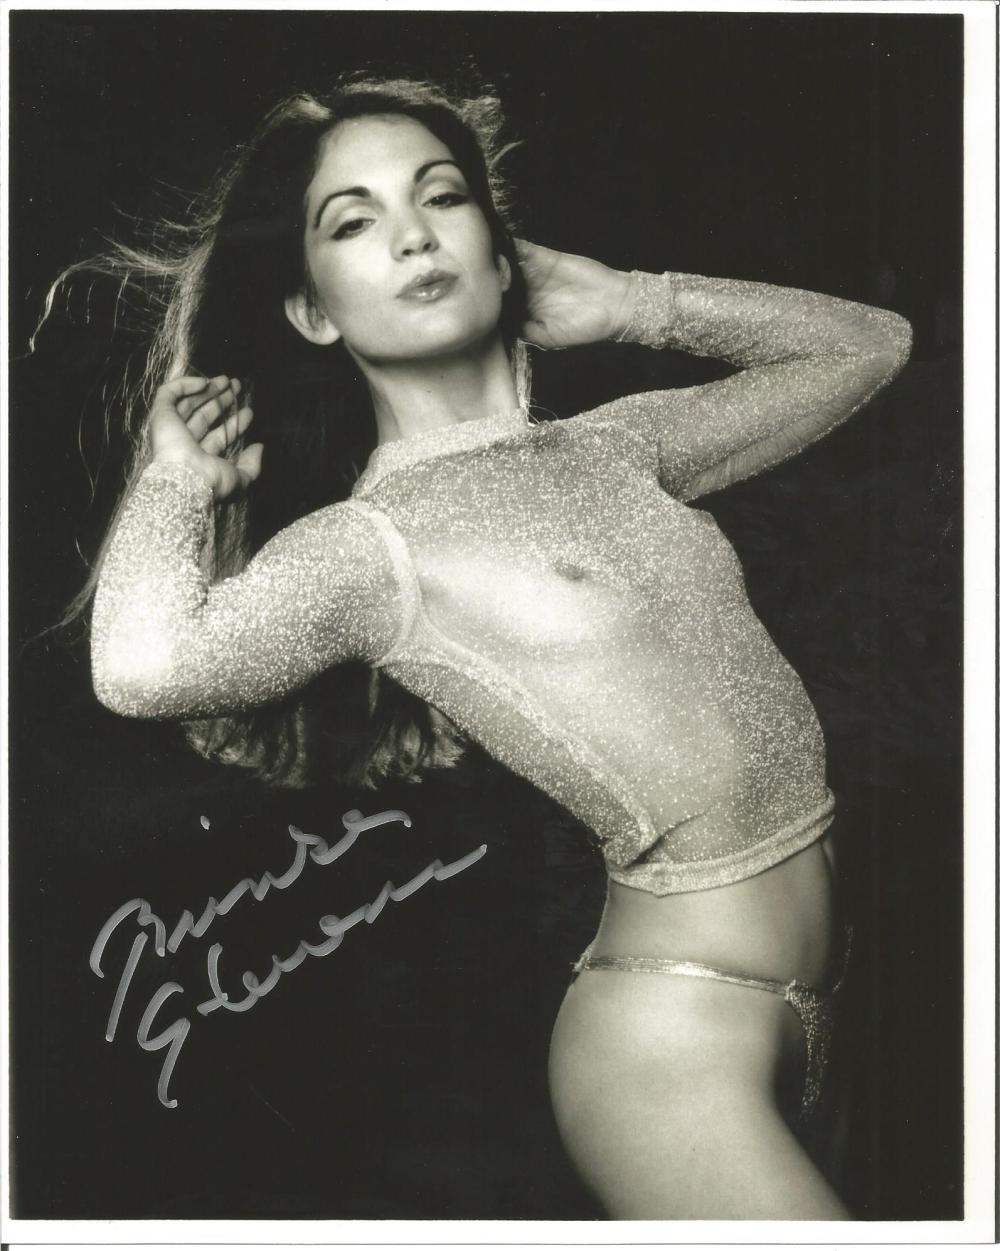 Brinke Stevens B-Movie Scream Queen hand signed 10x8 photo. This beautiful hand-signed photo depicts